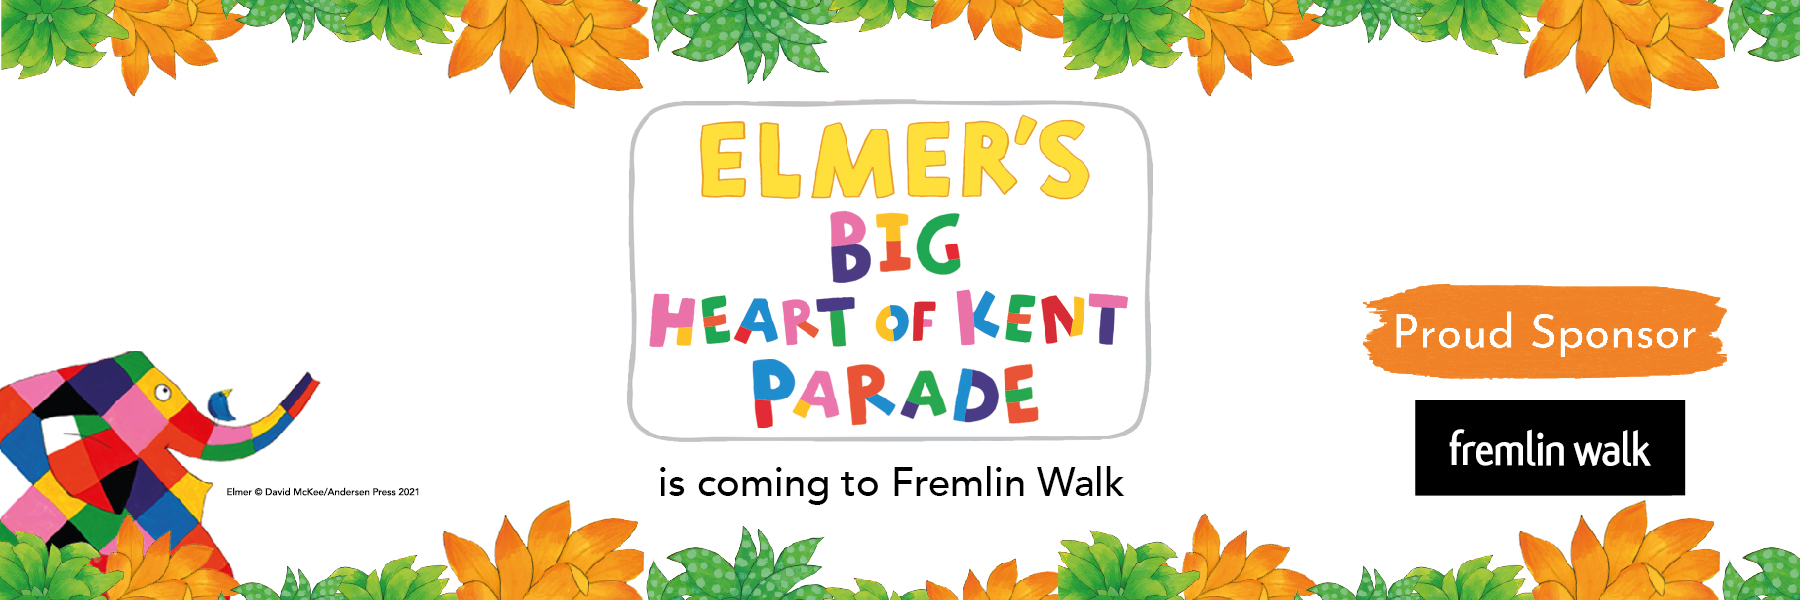 Elmer's Big Heart of Kent Parade is Coming to Maidstone!